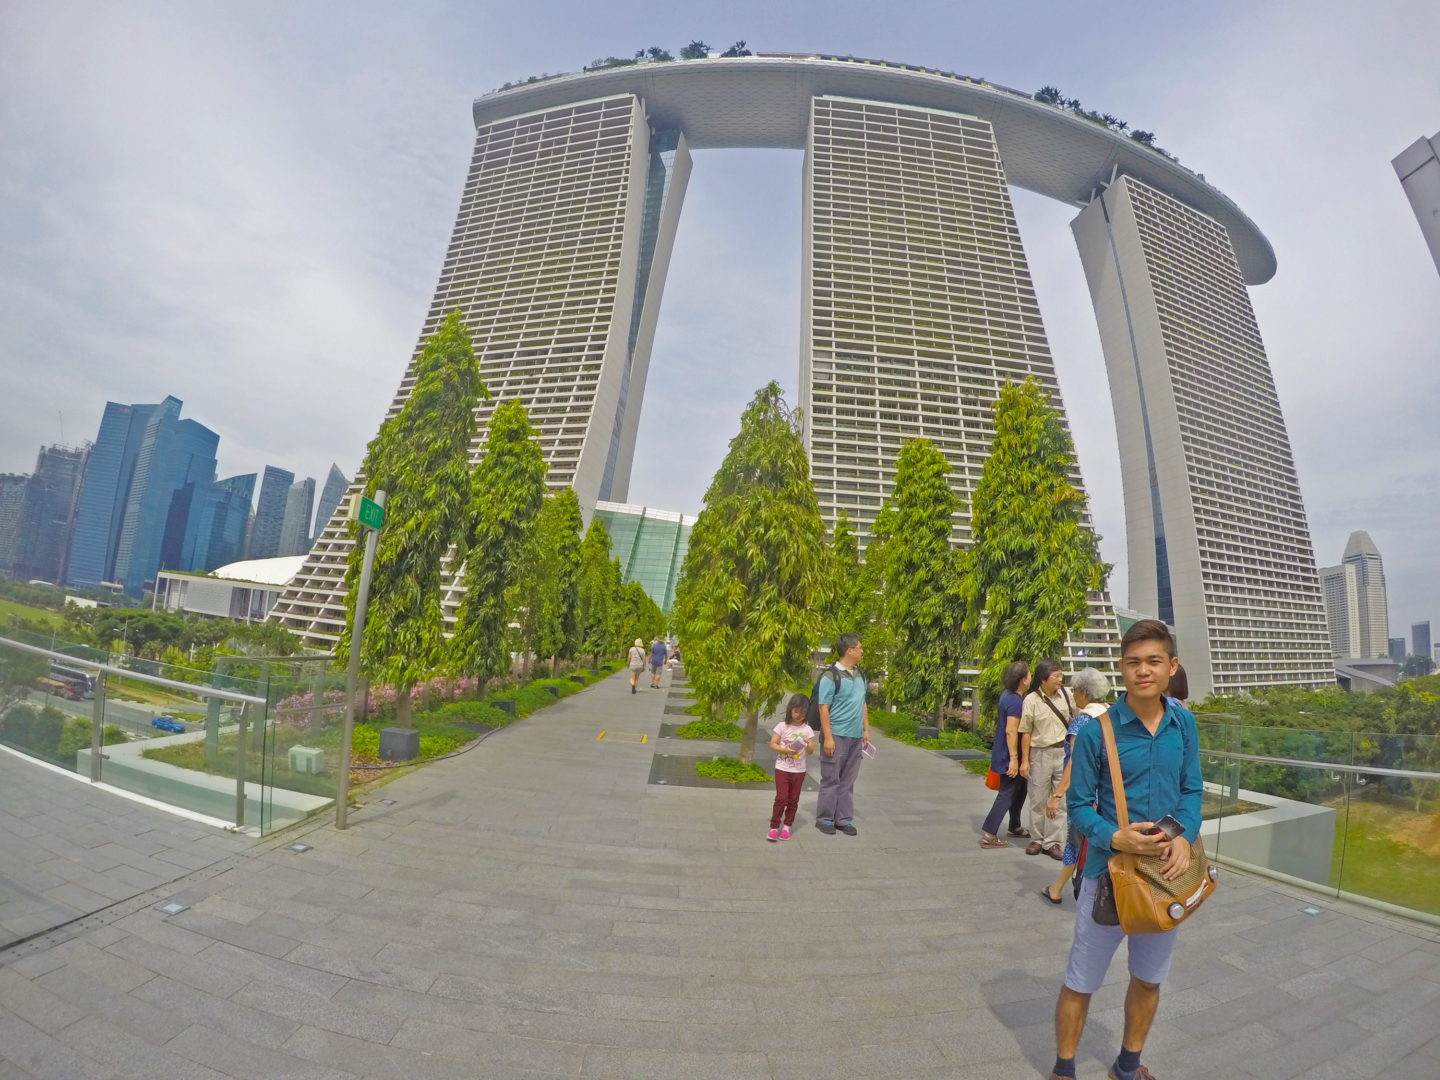 Marina Bay Sands - 8 Spots in Singapore - https://thejerny.com